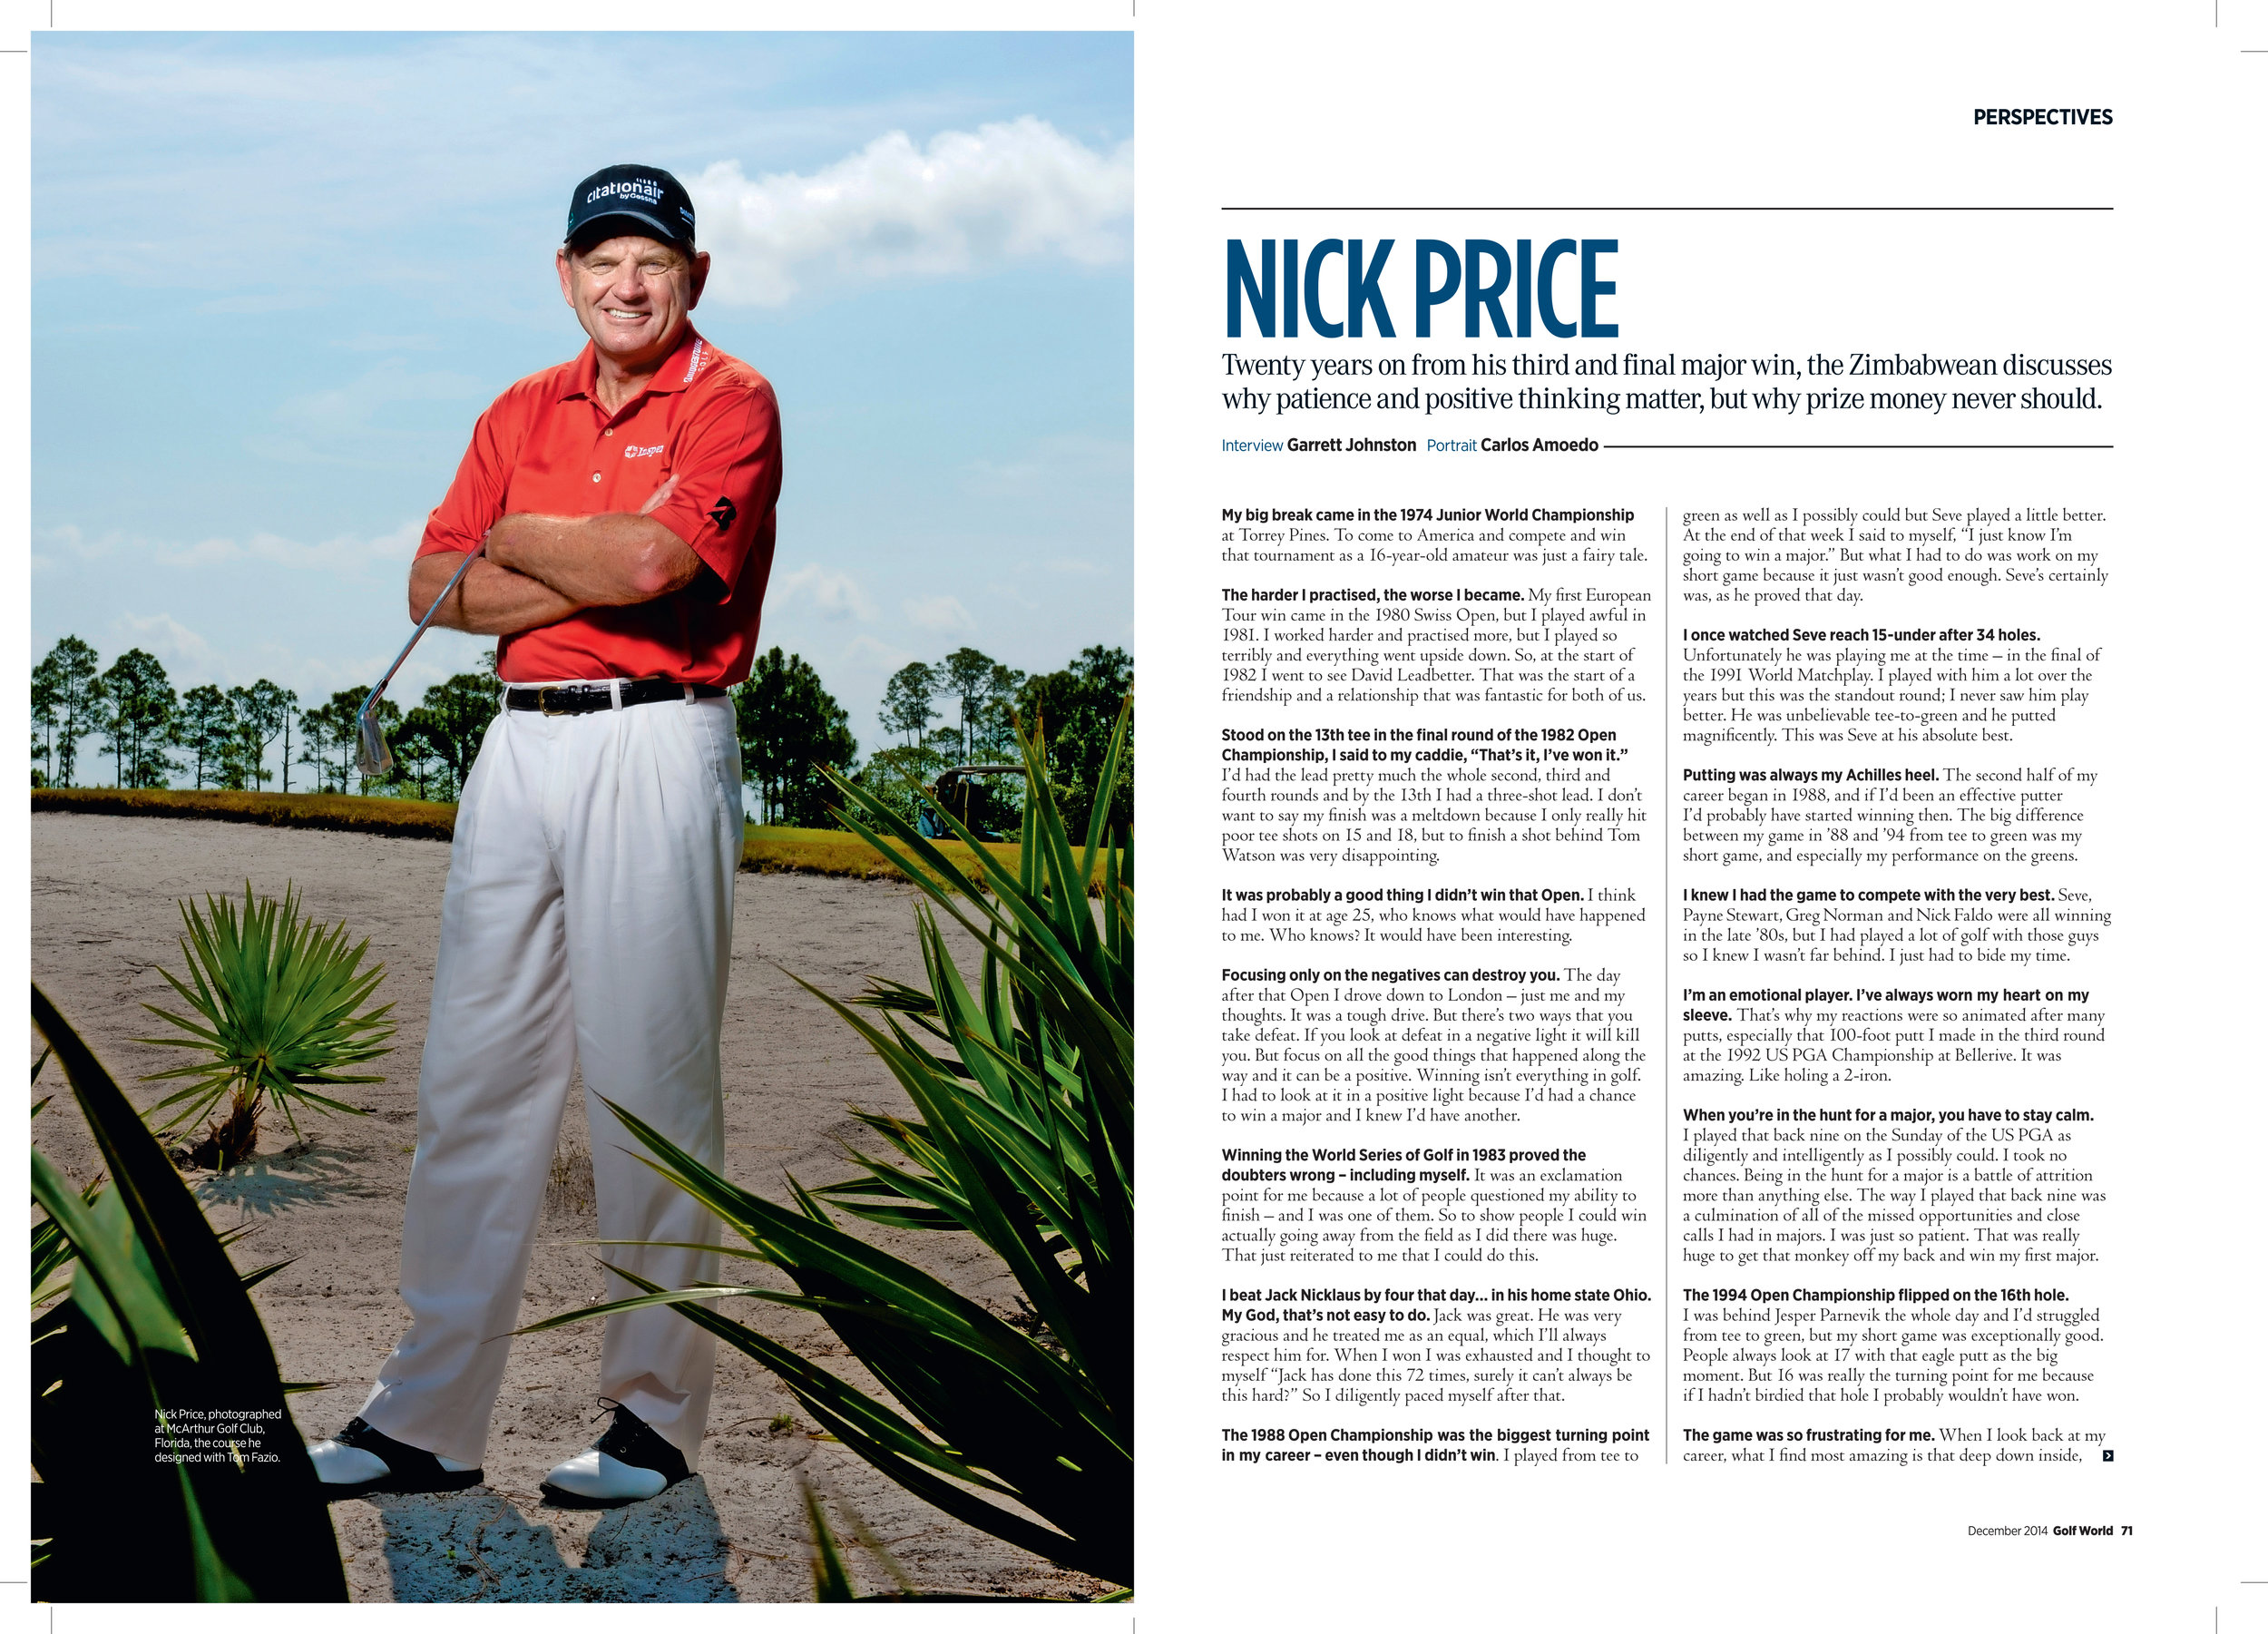 Feature Perspectives - Nick Price (Twist RD PDF)-1.jpg